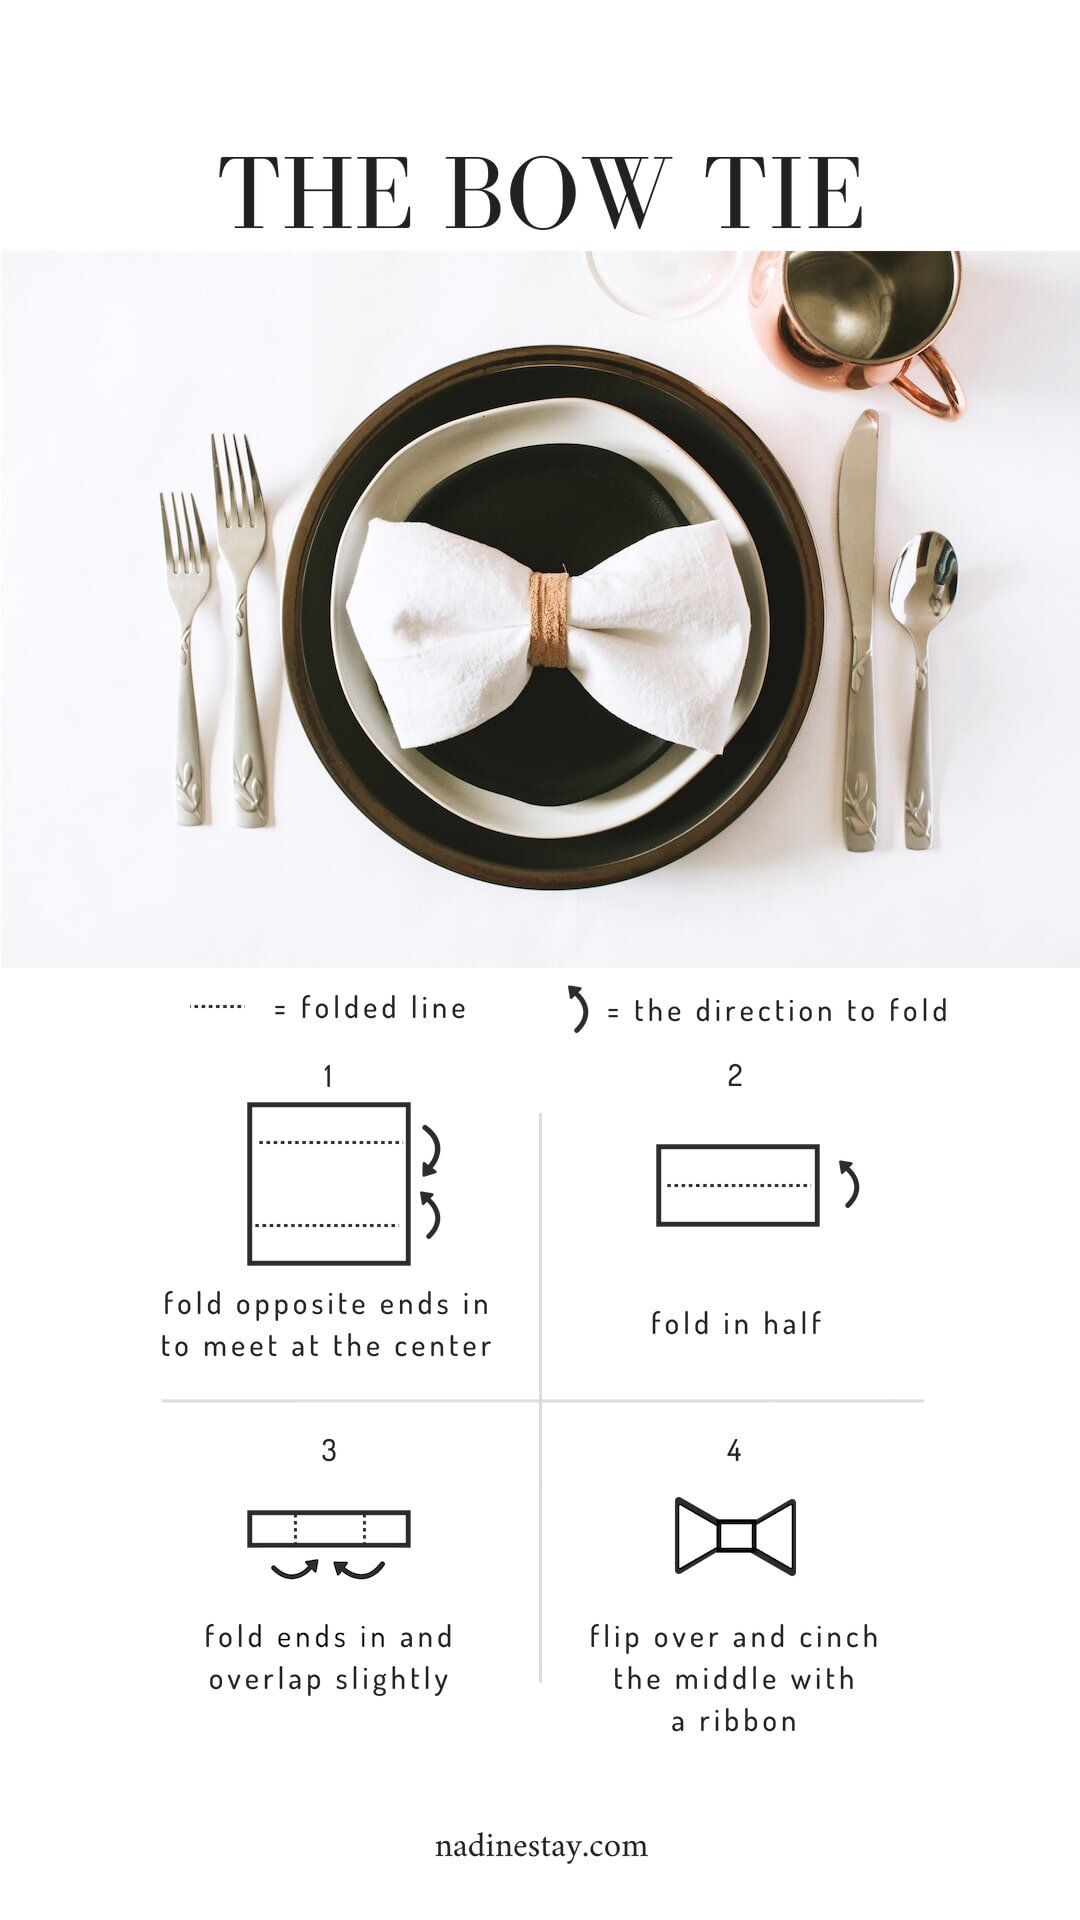 5 Ways To Fold A Napkin Nadine Stay